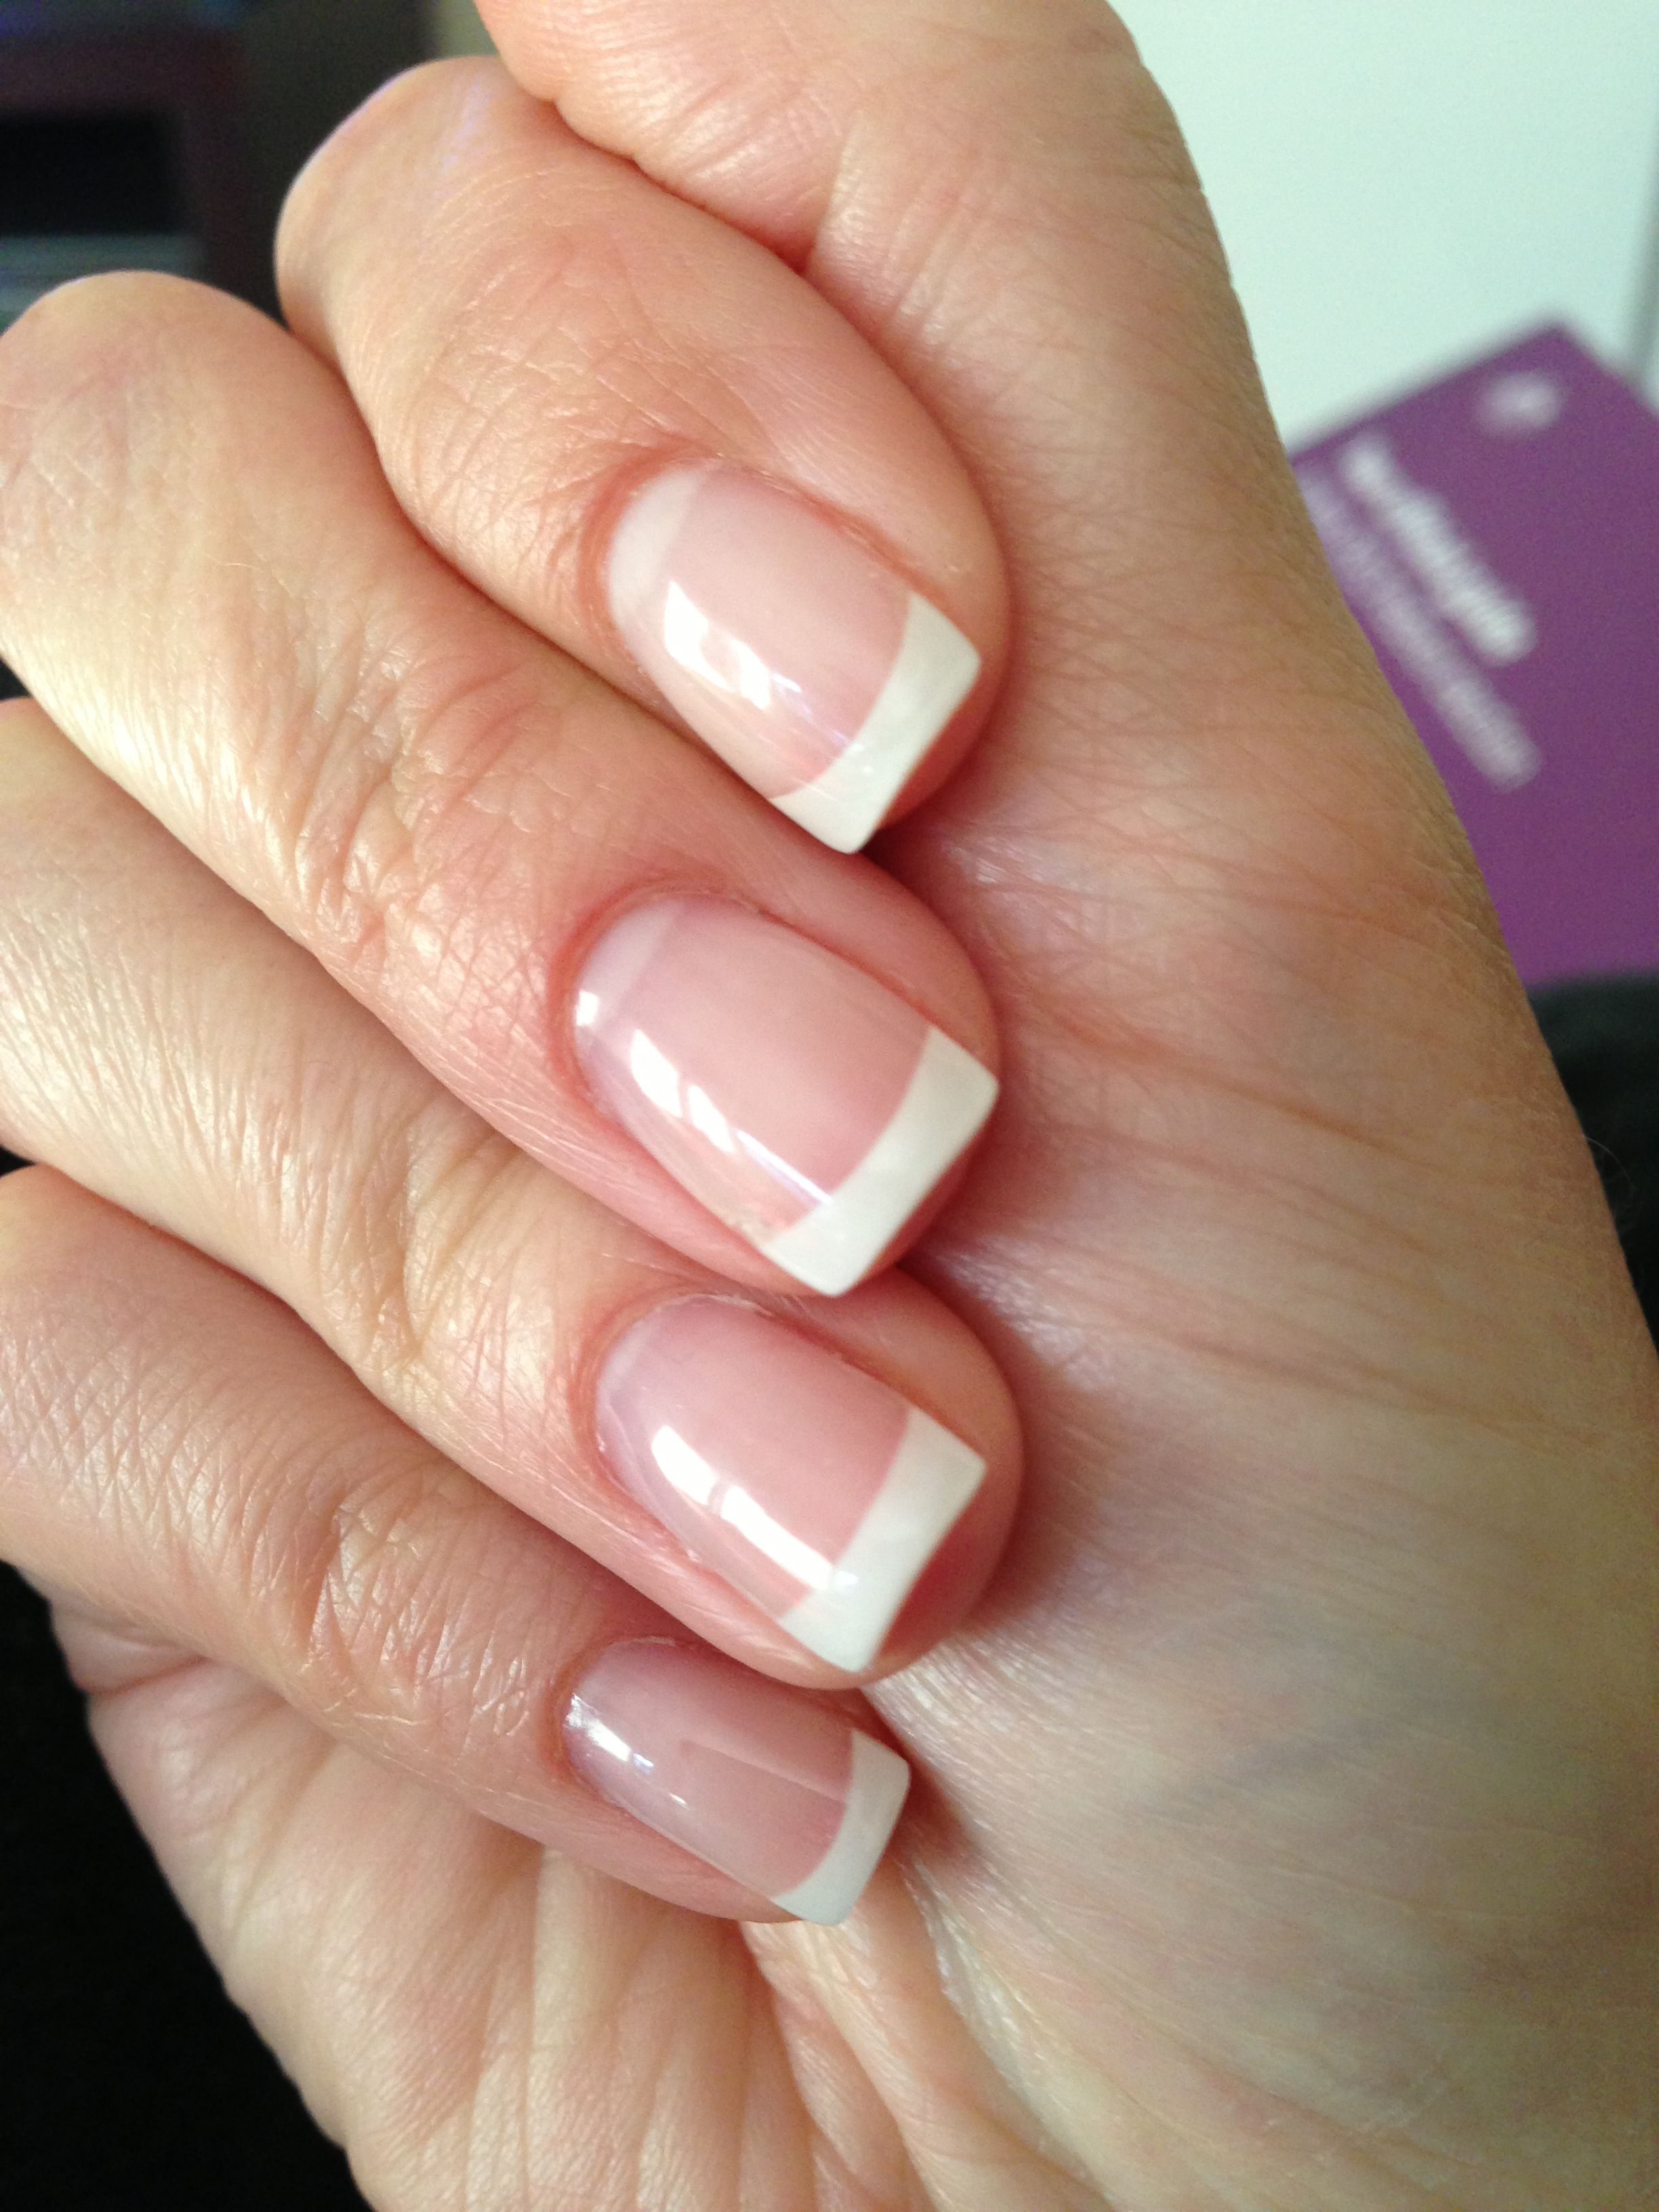 Pin By Stephanie Edson On Gee I Love My Job French Nails French Tip Acrylic Nails Nails